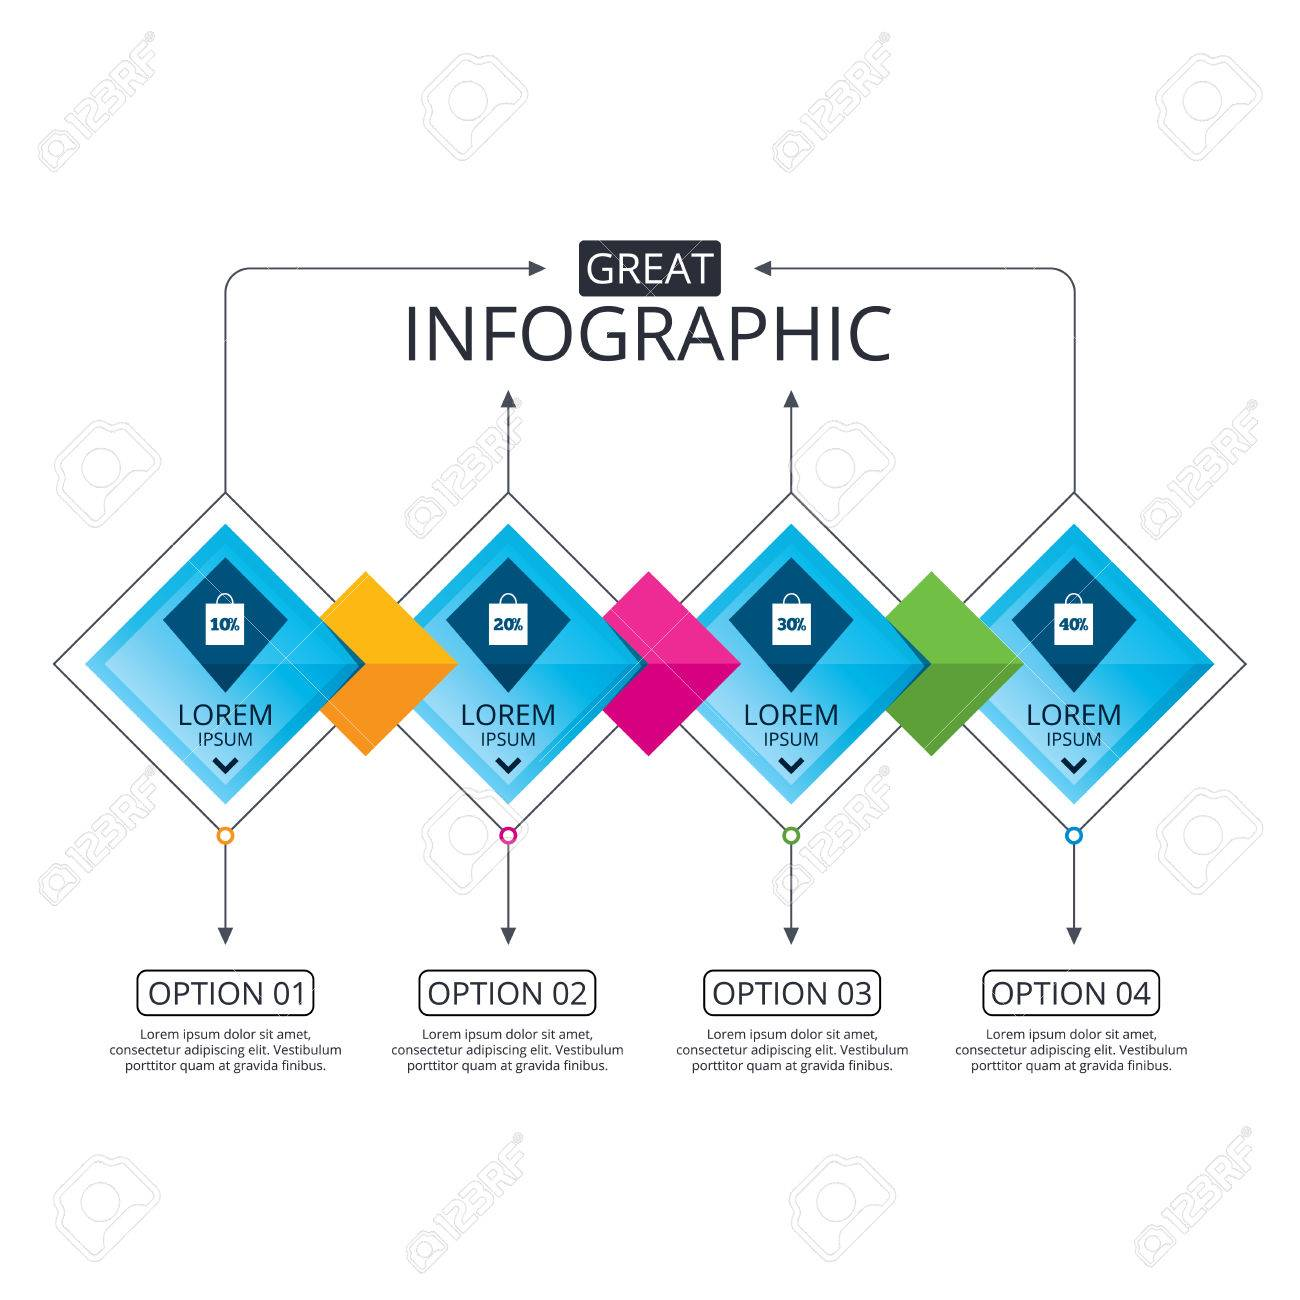 Outstanding 82 Tremendous Flow Chart Diagram Image Ideas Image ...